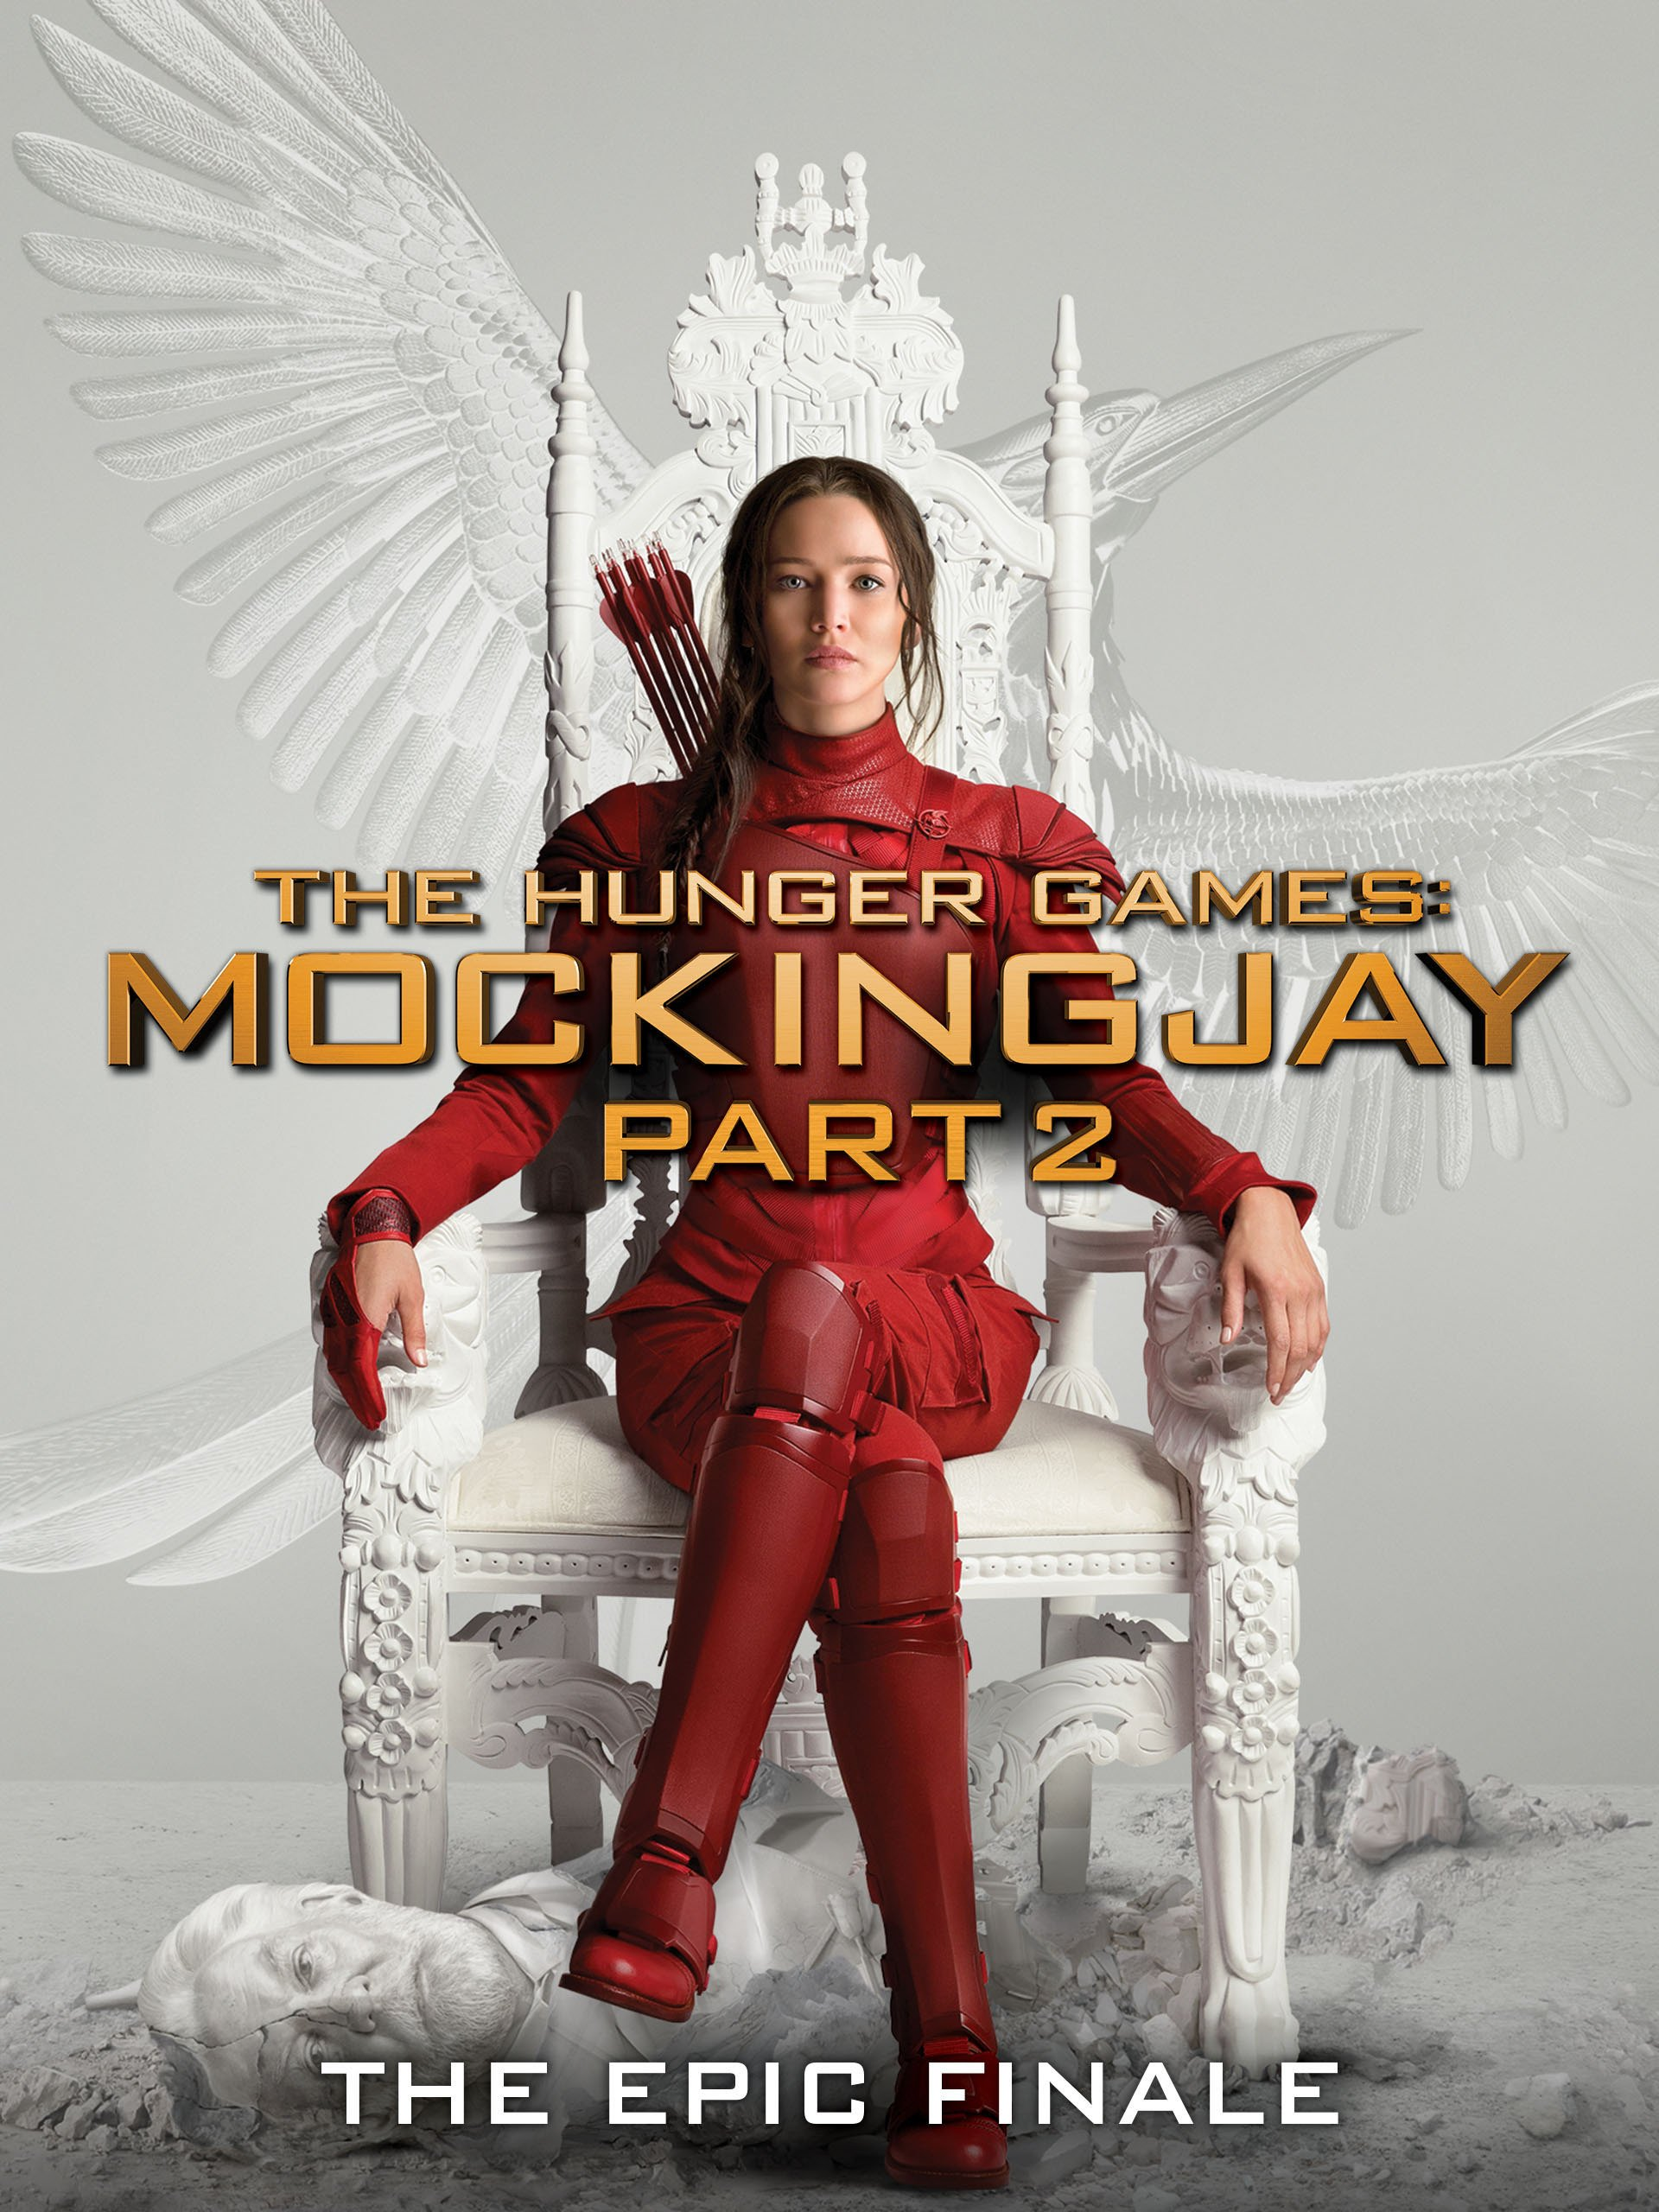 Amazon.com: The Hunger Games: Mockingjay - Part 2: Jennifer Lawrence, Josh  Hutcherson, Woody Harrelson, Elizabeth Banks: Amazon Digital Services LLC